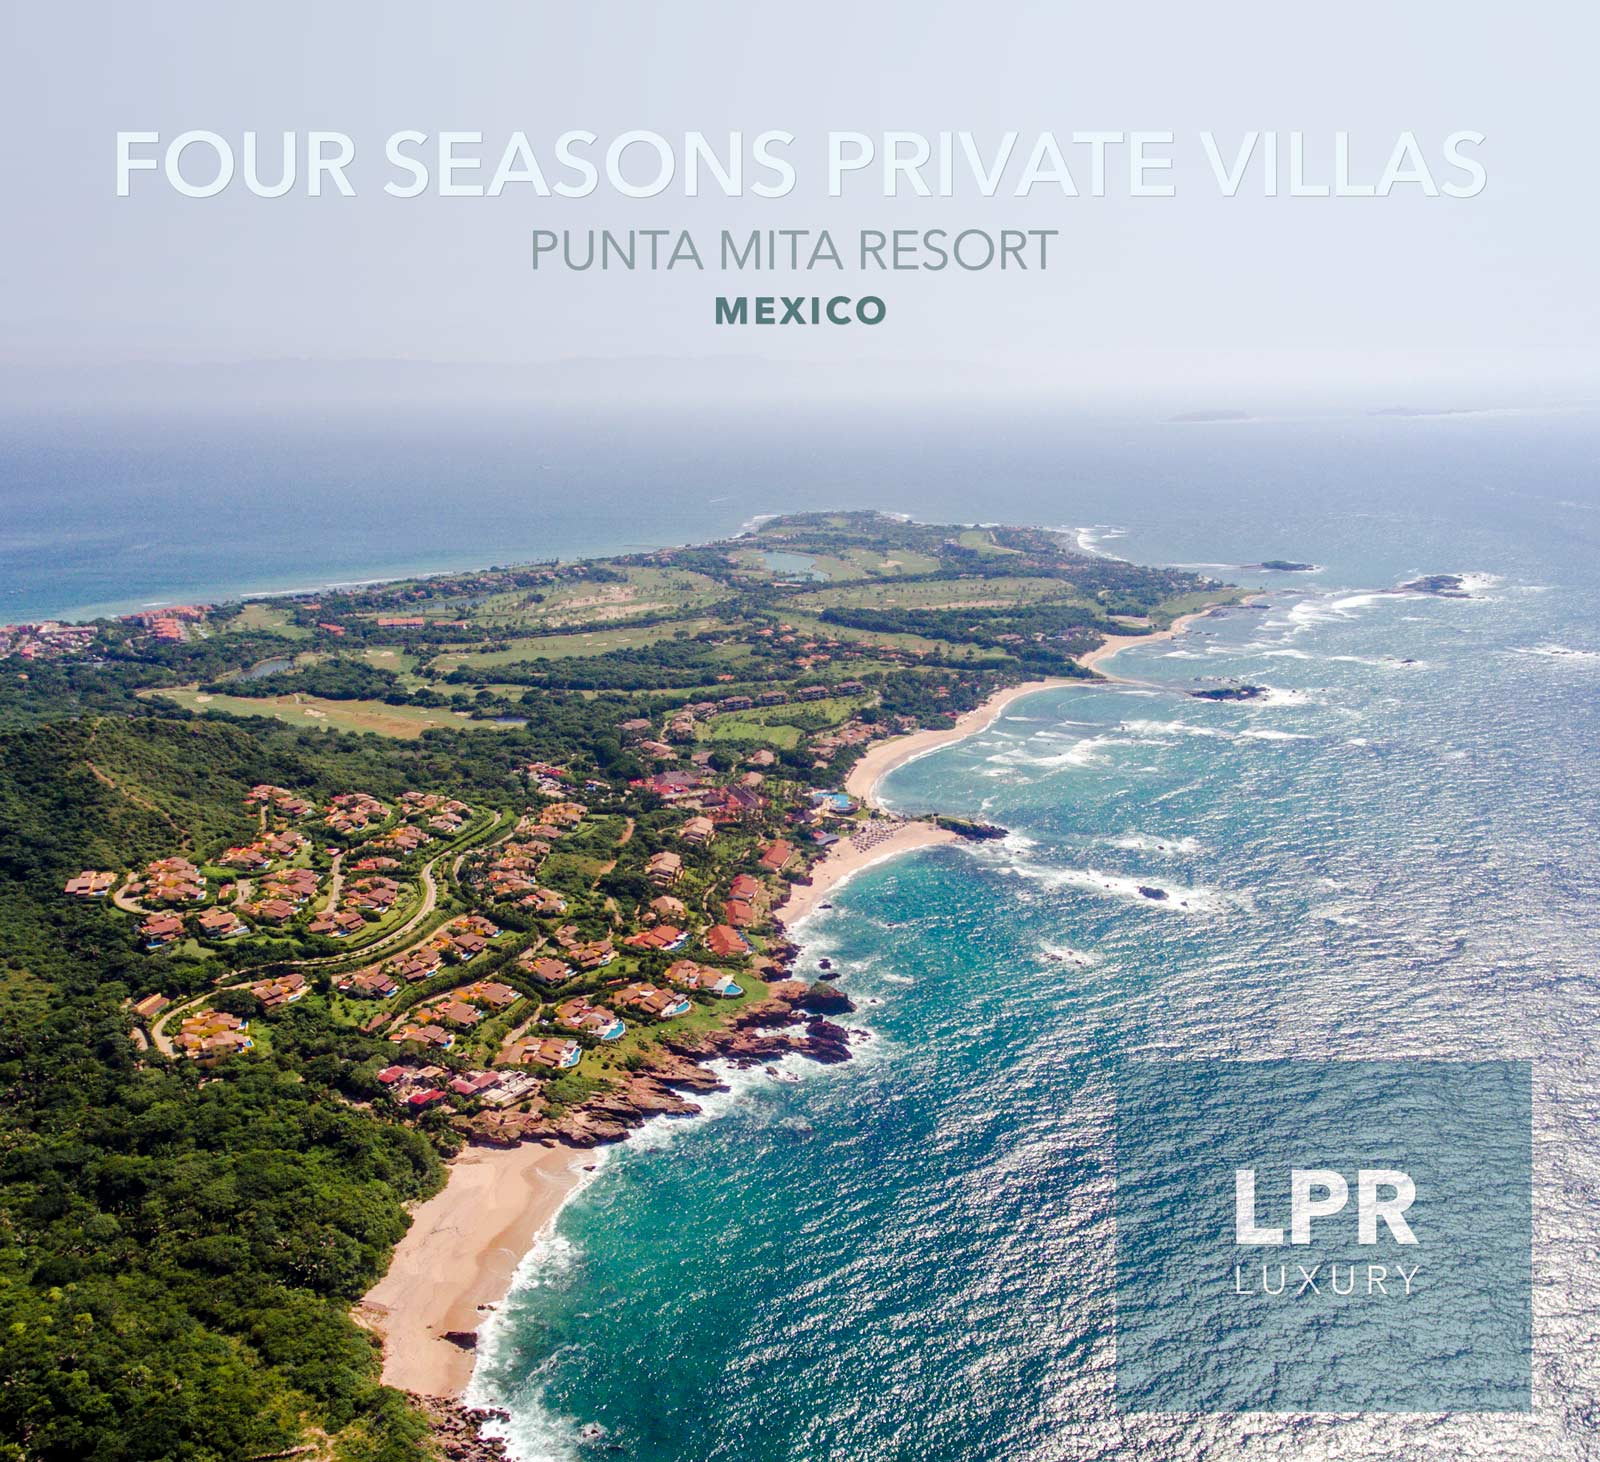 The Four Seasons Private Villas at the exclusive Punta Mita Resort, Riviera Nayarit, Mexico